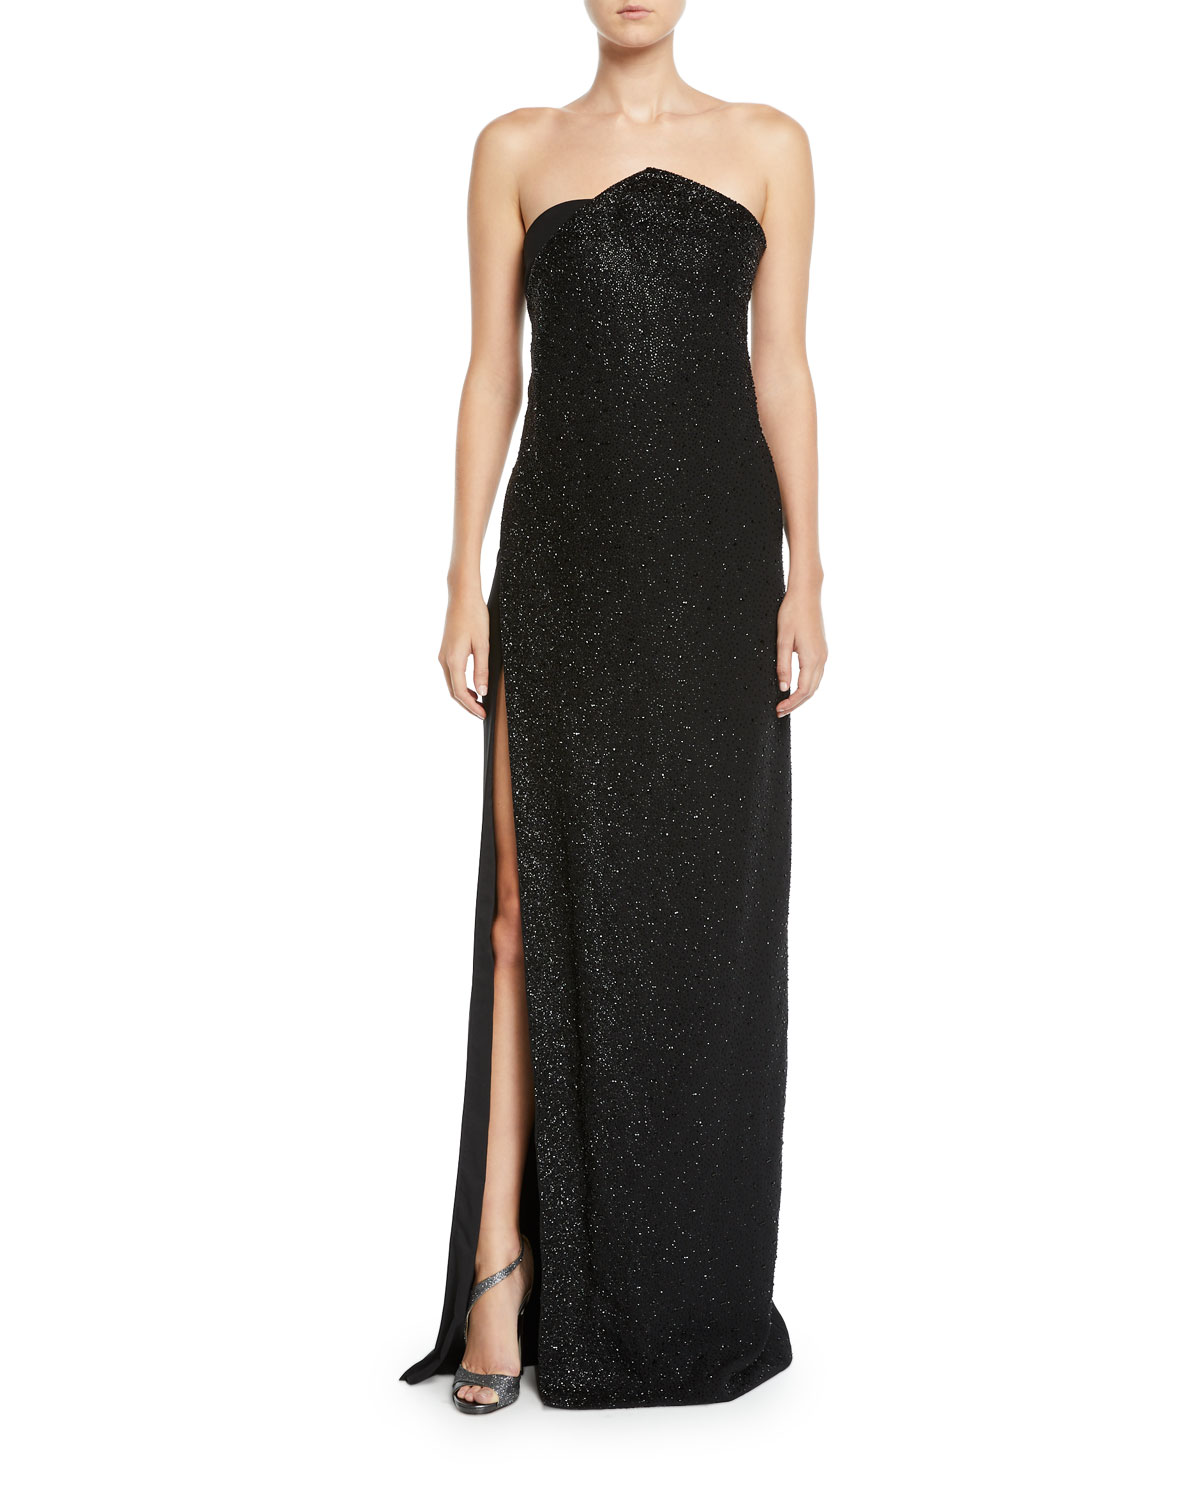 AHLUWALIA Chalet Strapless Slit-Skirt Shimmered Column Gown in Black